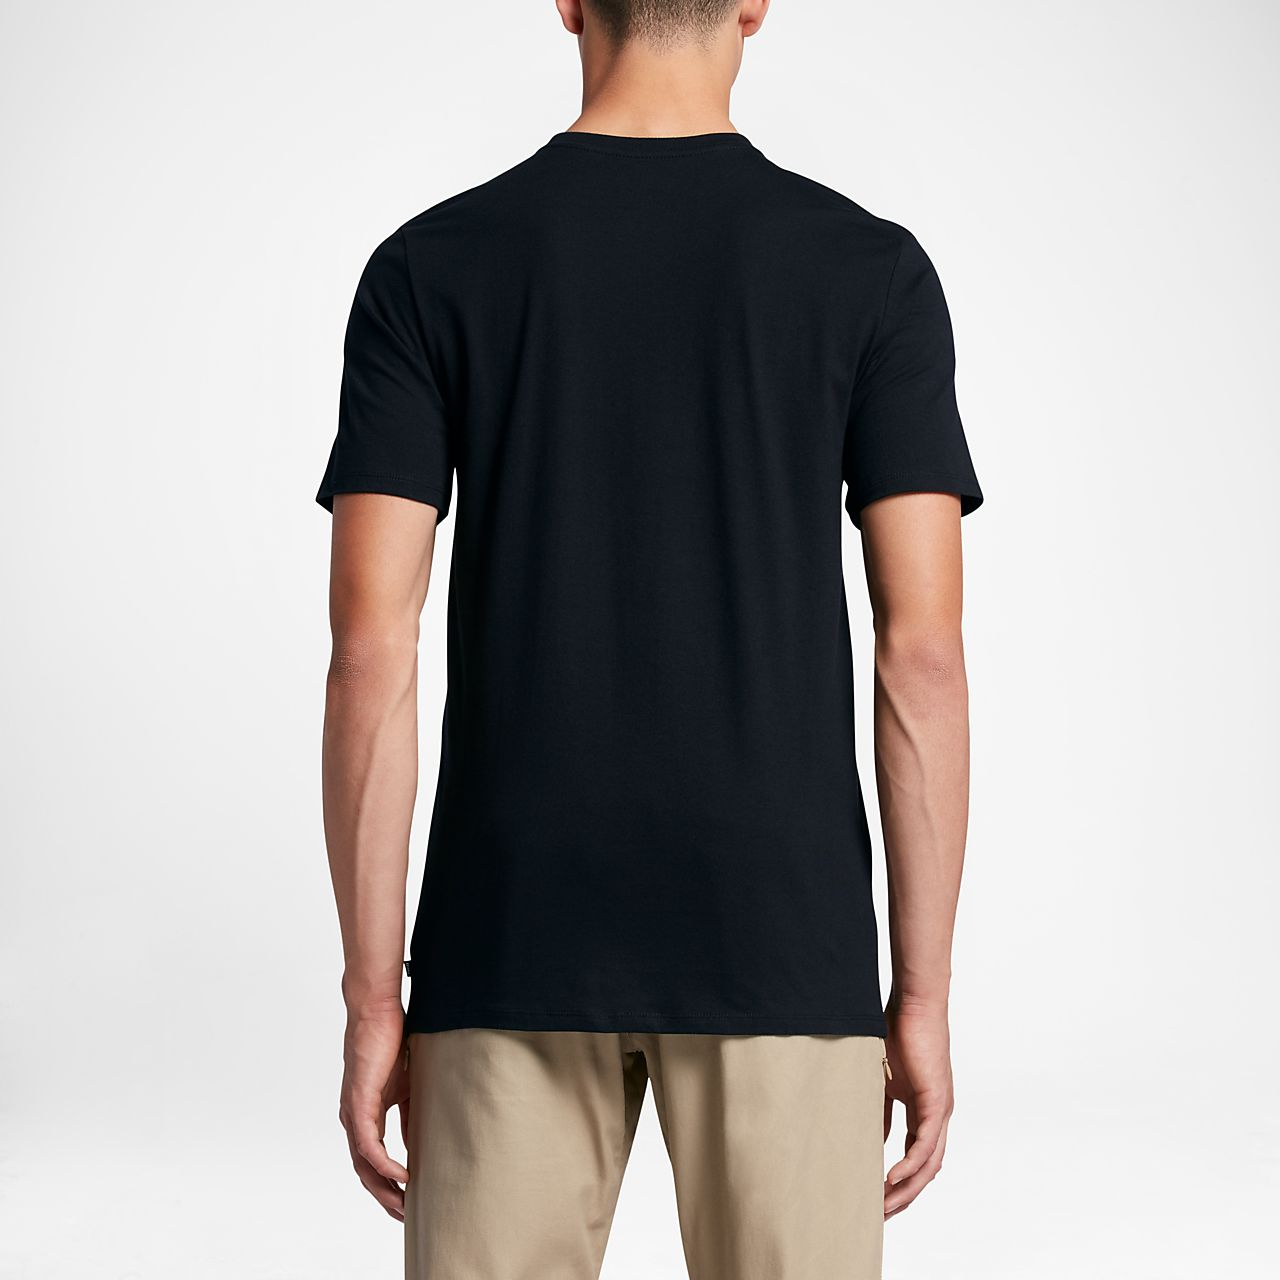 0faff128 Nike SB Essential Men's T-Shirt. Nike.com GB